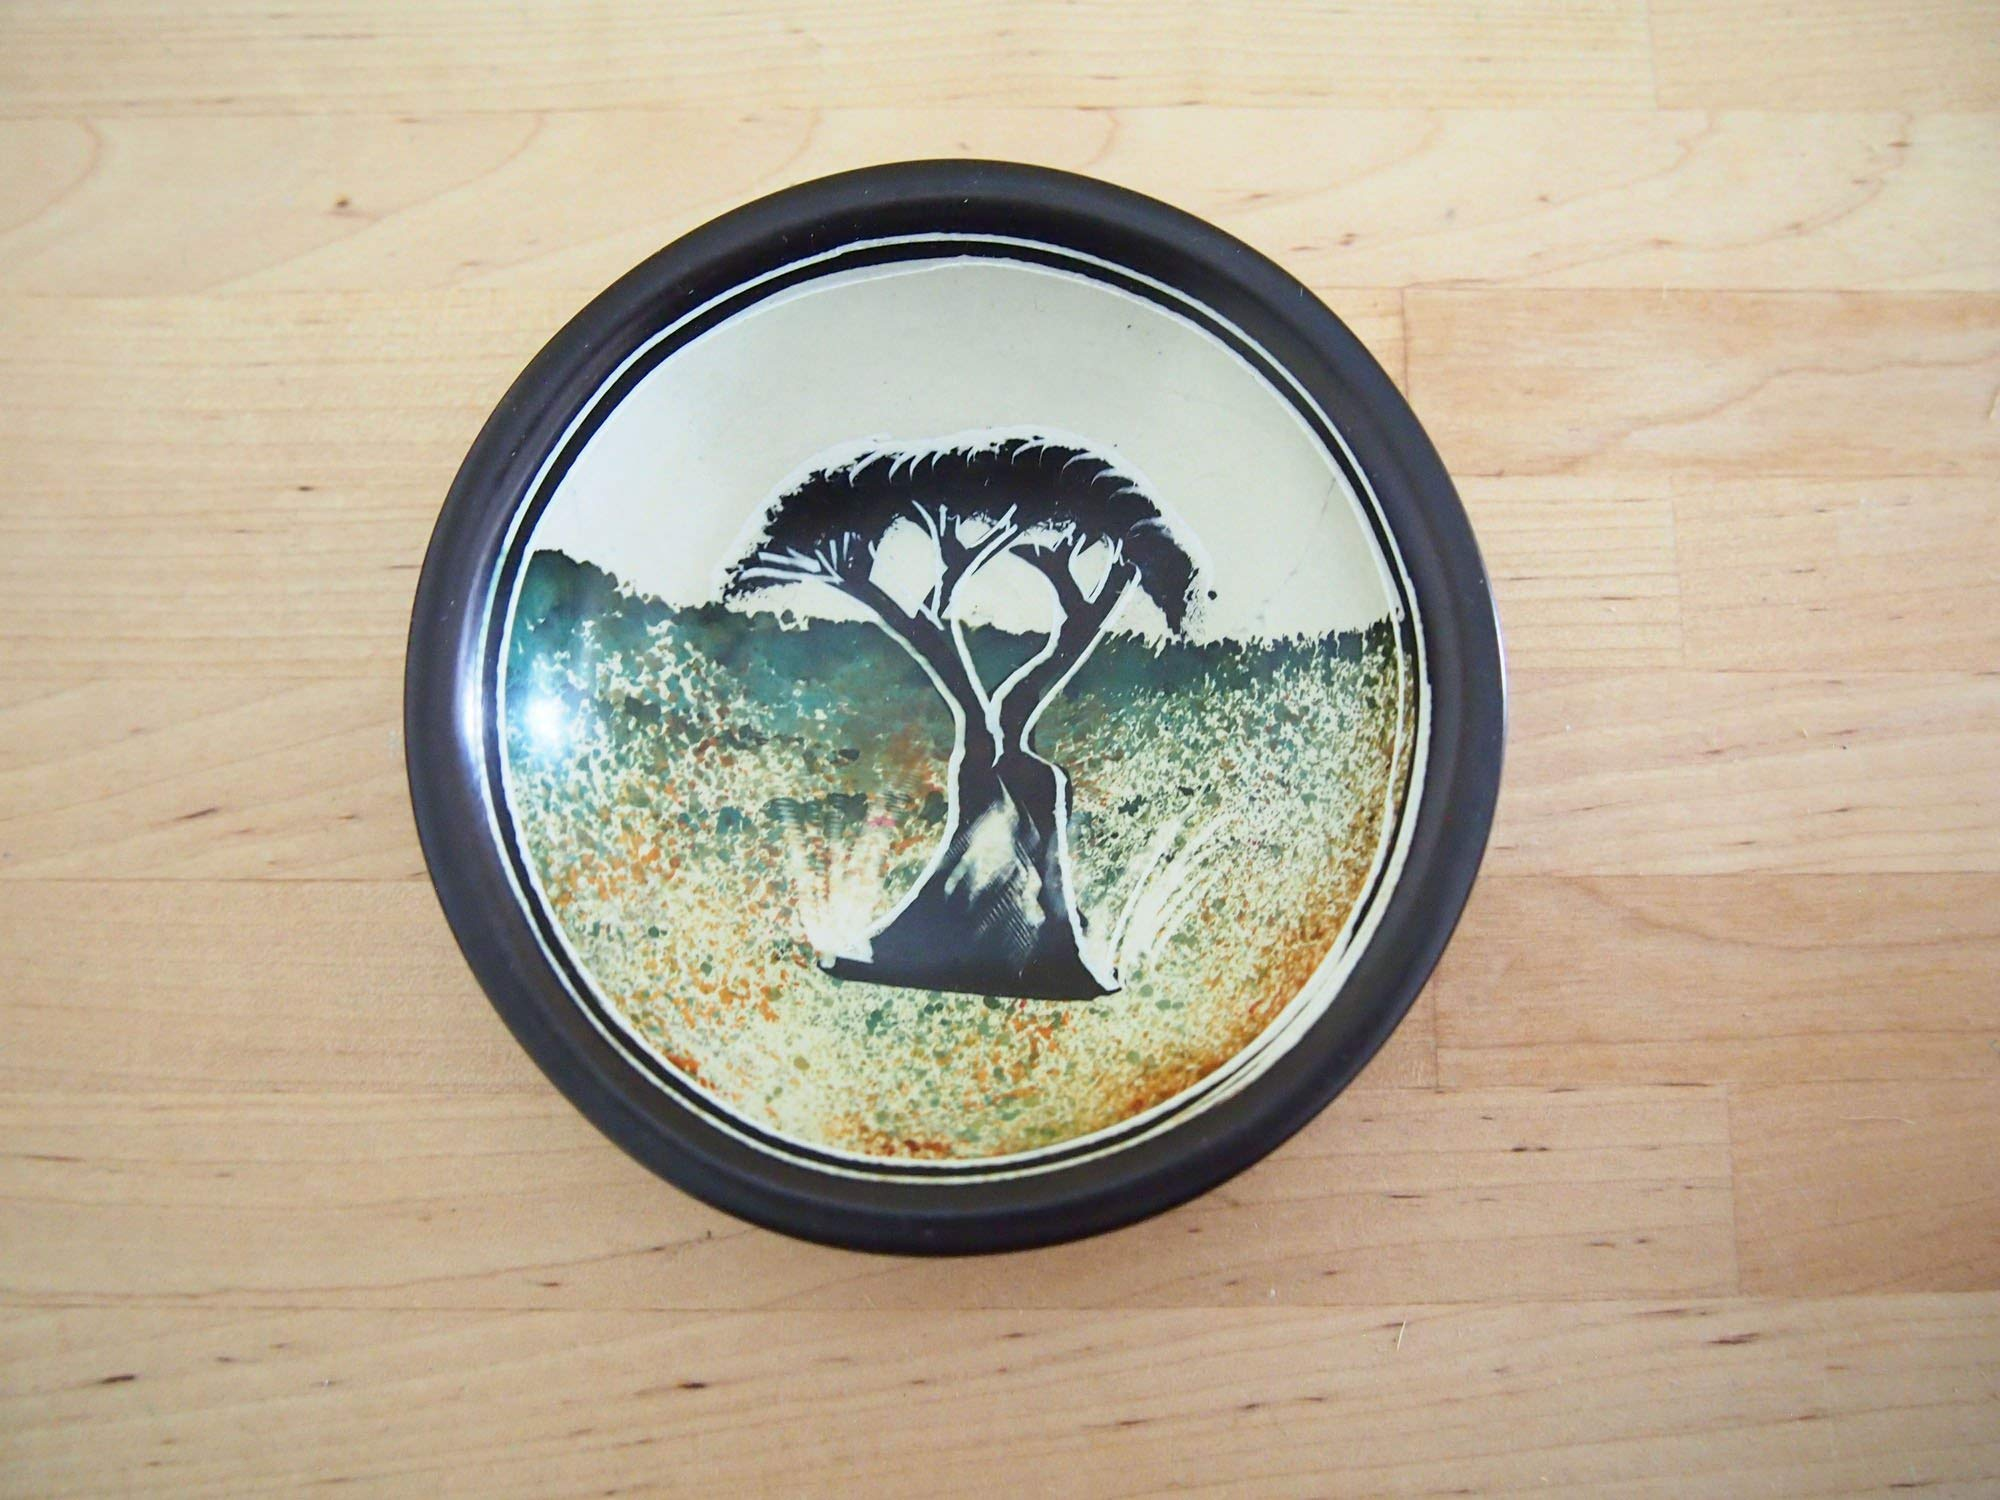 Handcrafted African 4'' Baobab Tree Soapstone Dish, Made in Kenya by Amsha